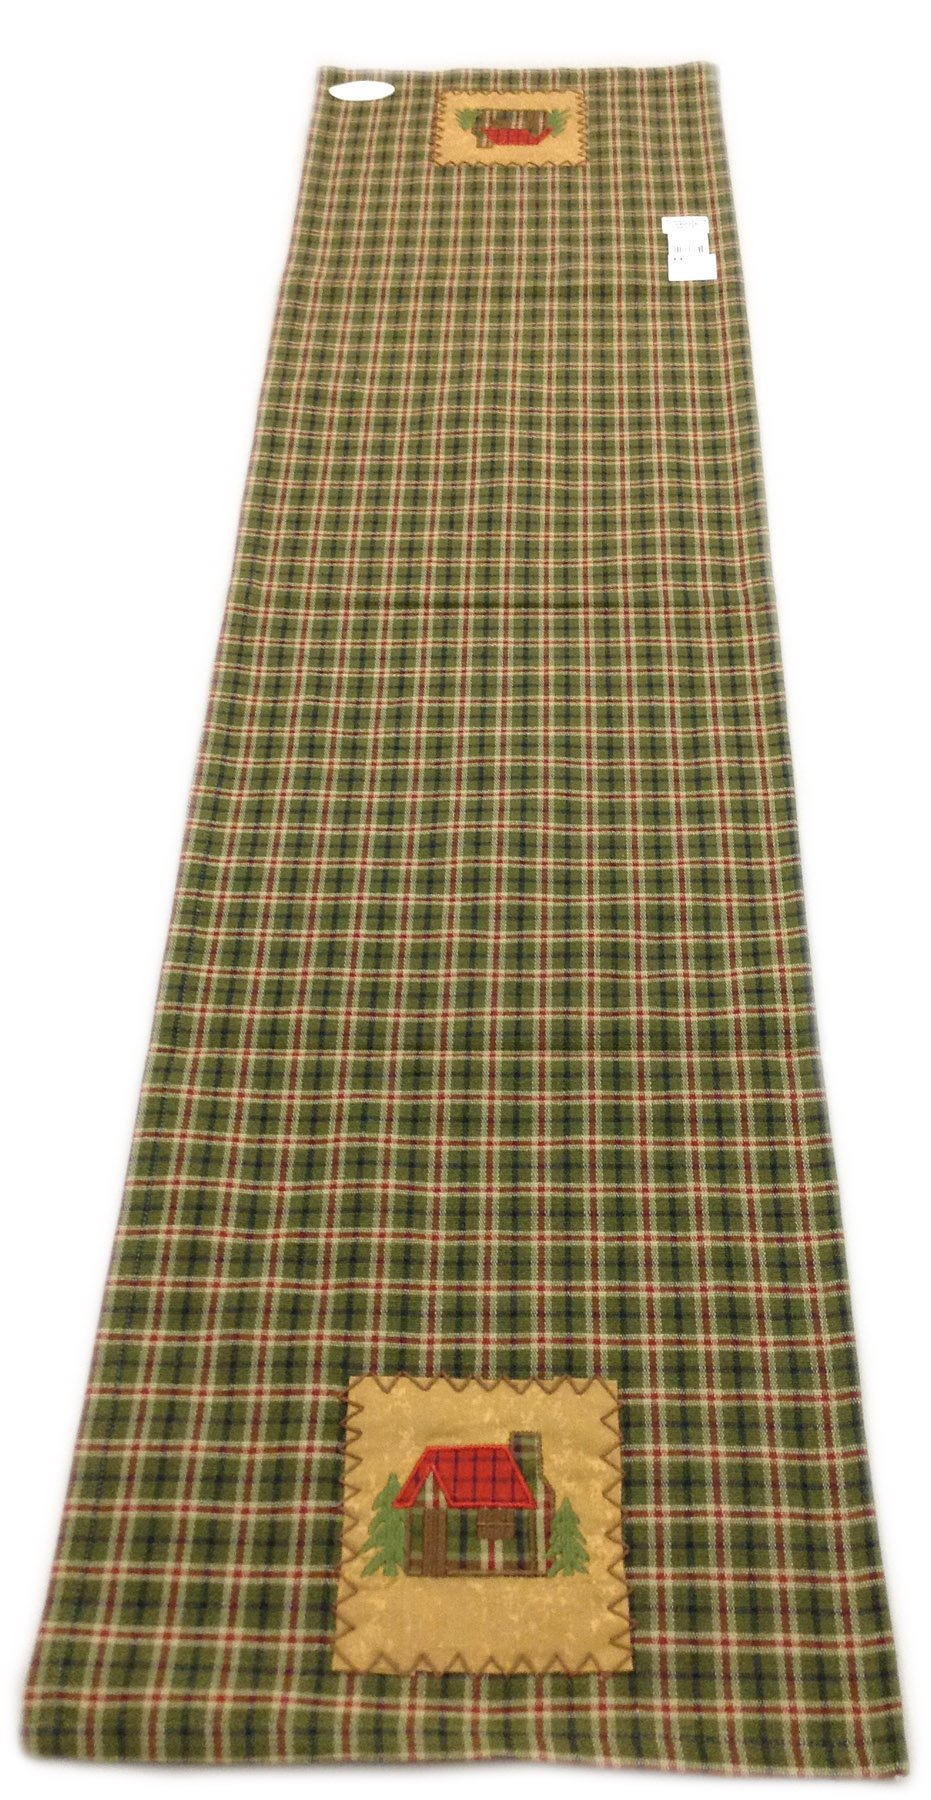 Cabin Plaid Table Runner 13 x 54 inches by Park Designs (Image #2)